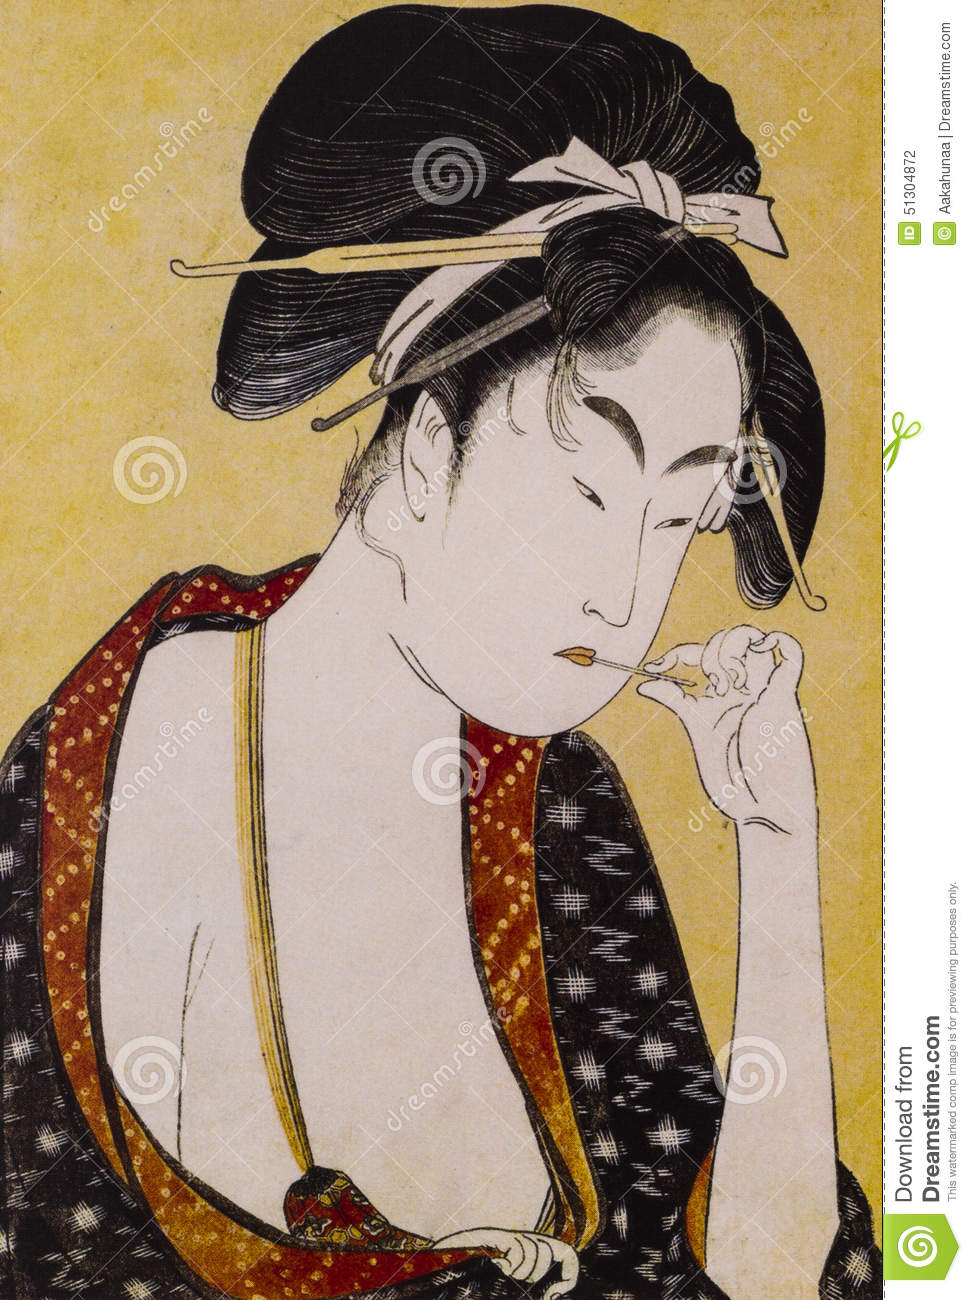 Japanese Traditional Clothing Stock Photo Image Of Women Traditional 51304872